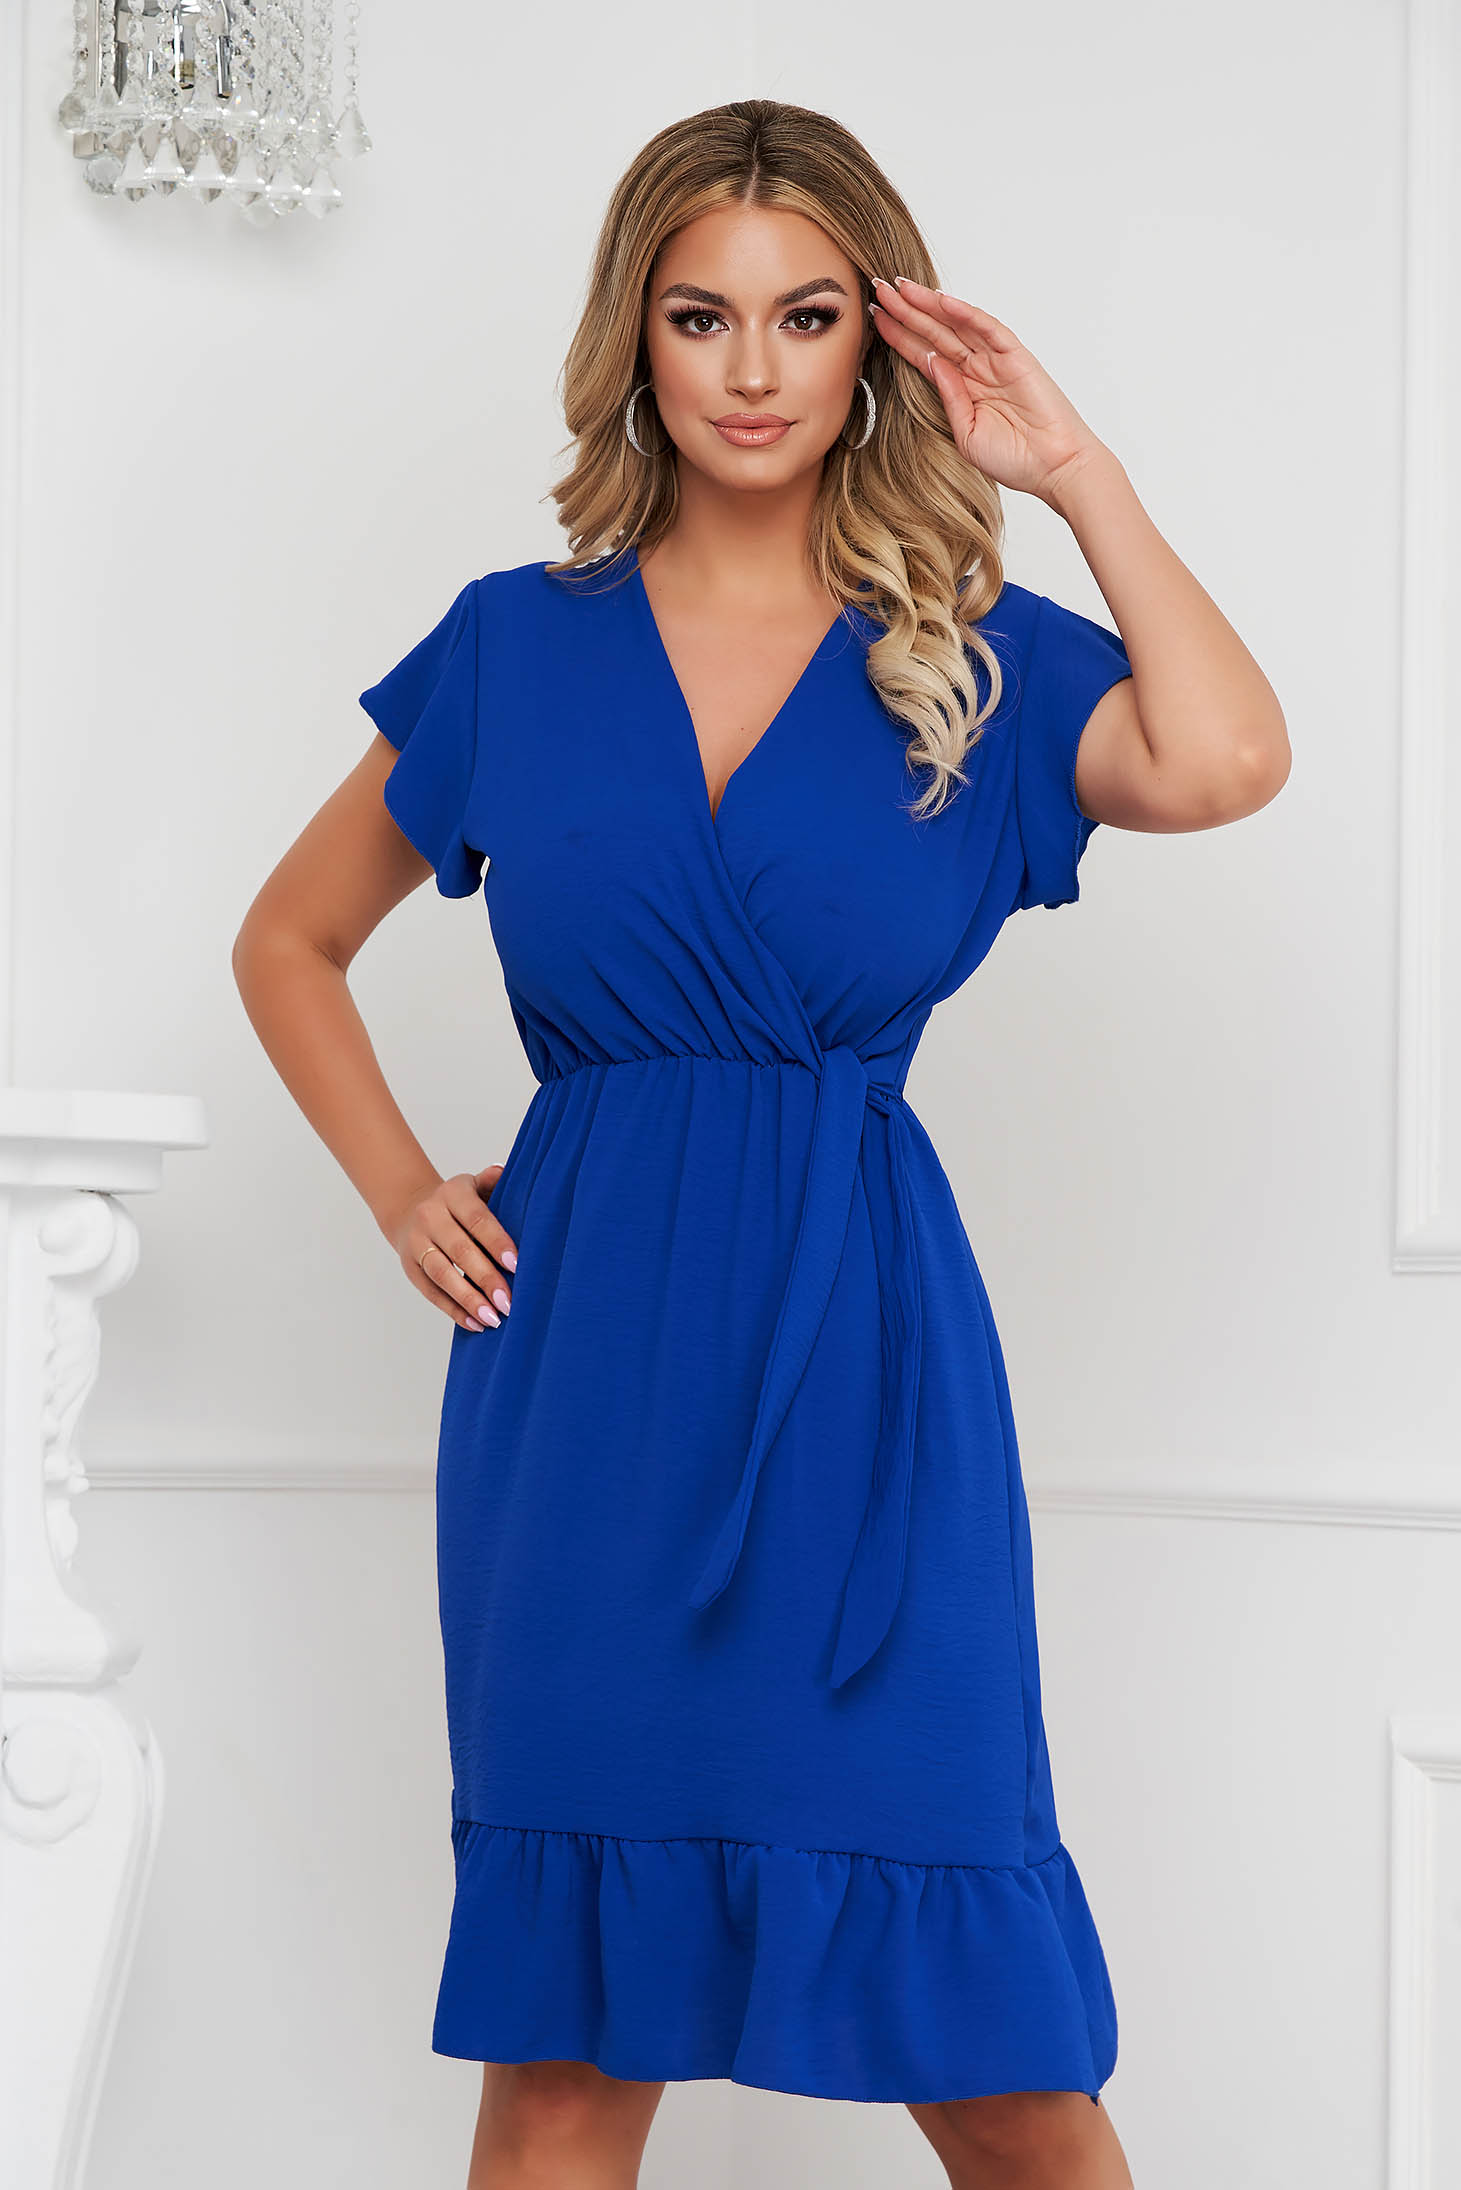 Blue dress midi cloche with elastic waist airy fabric with ruffle details